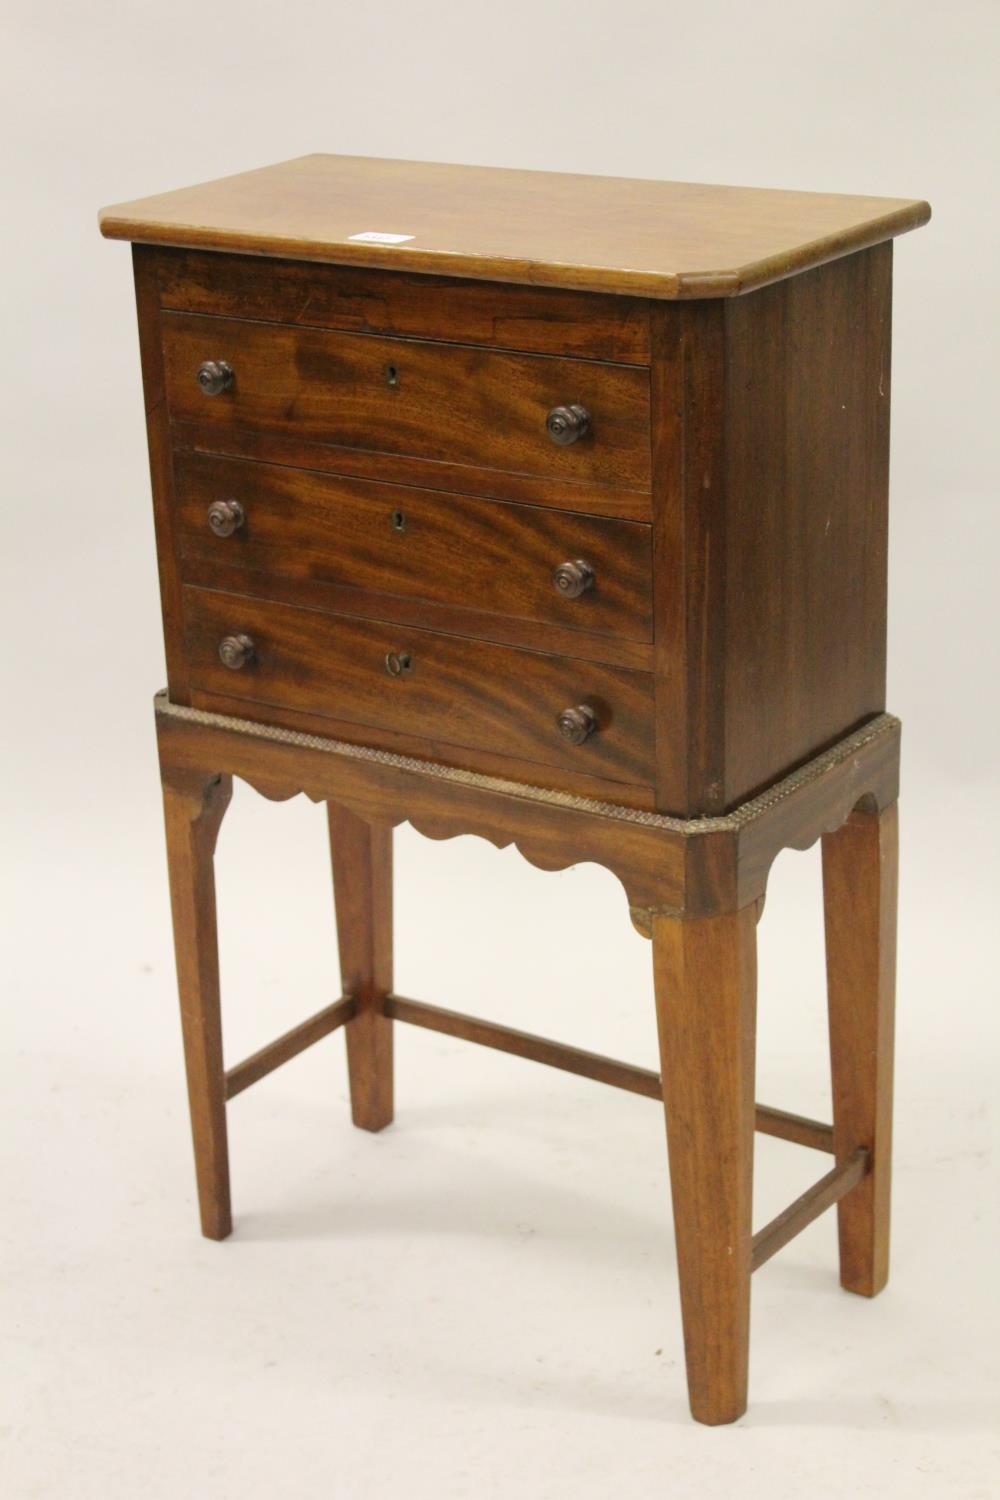 Small mahogany three drawer chest with knob handles on stand, 30.5ins x 19.5ins